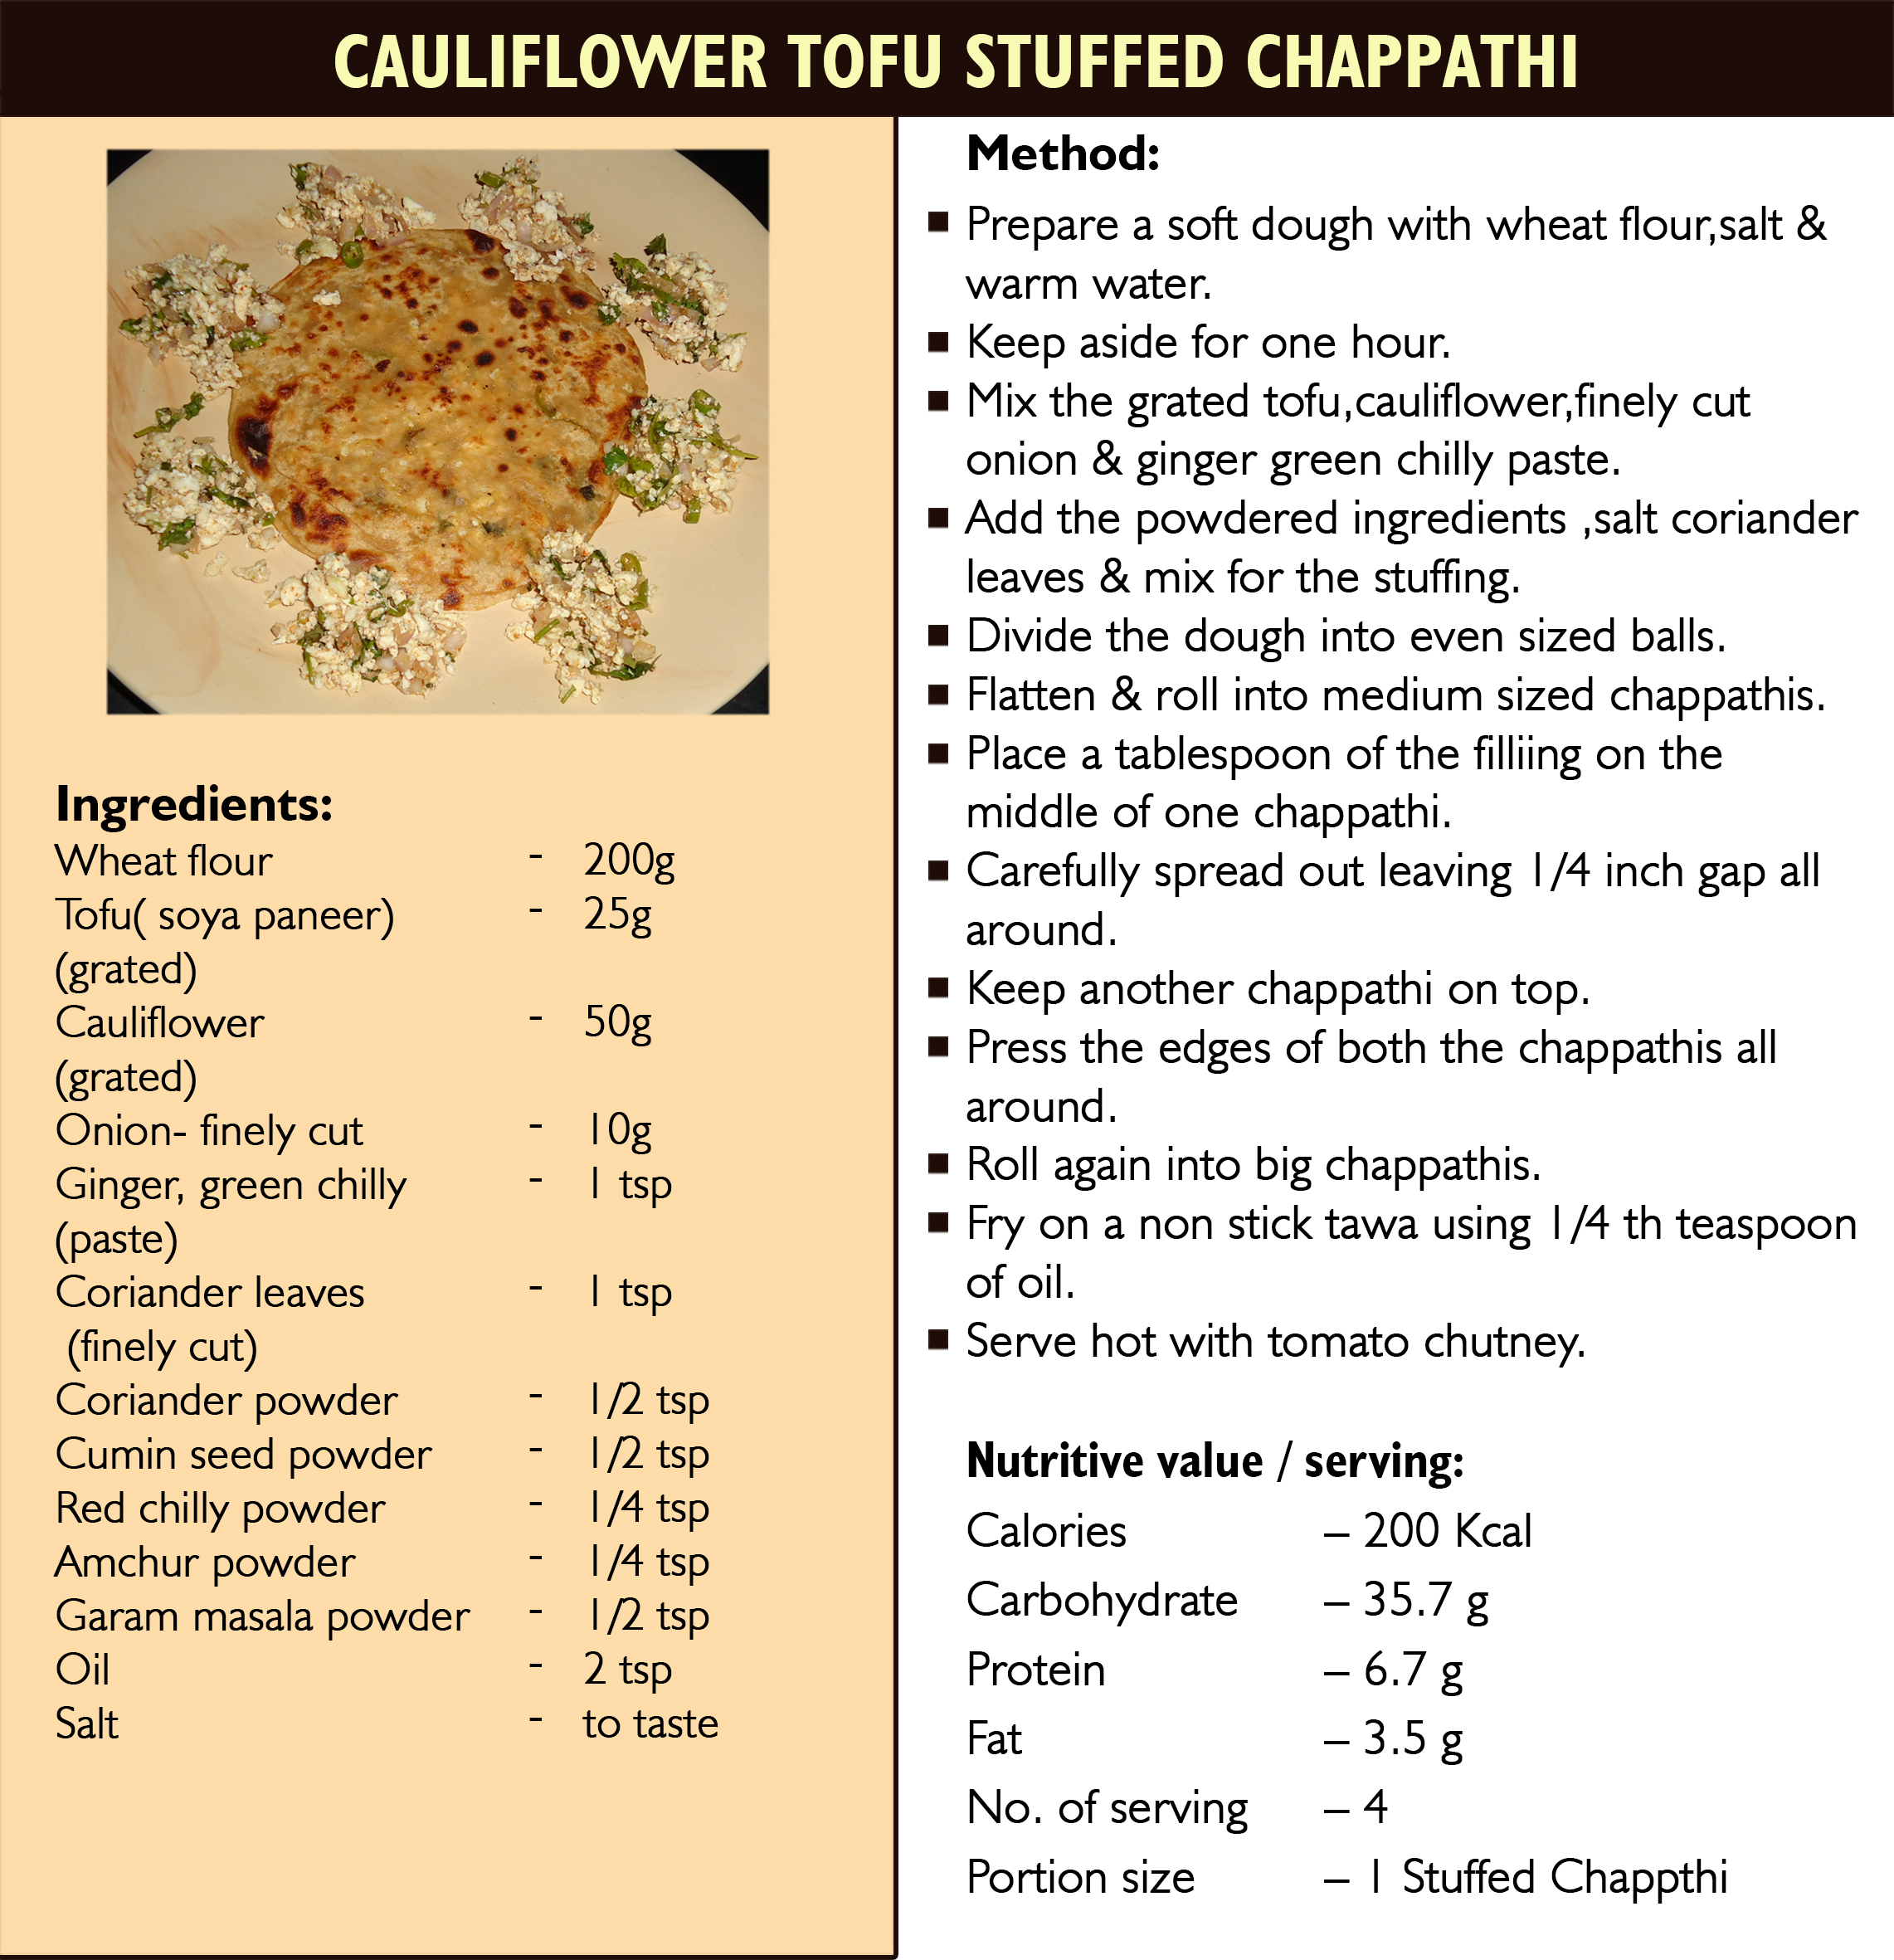 CAULIFLOWER-TOFU-STUFFED-CHAPPATHI.jpg